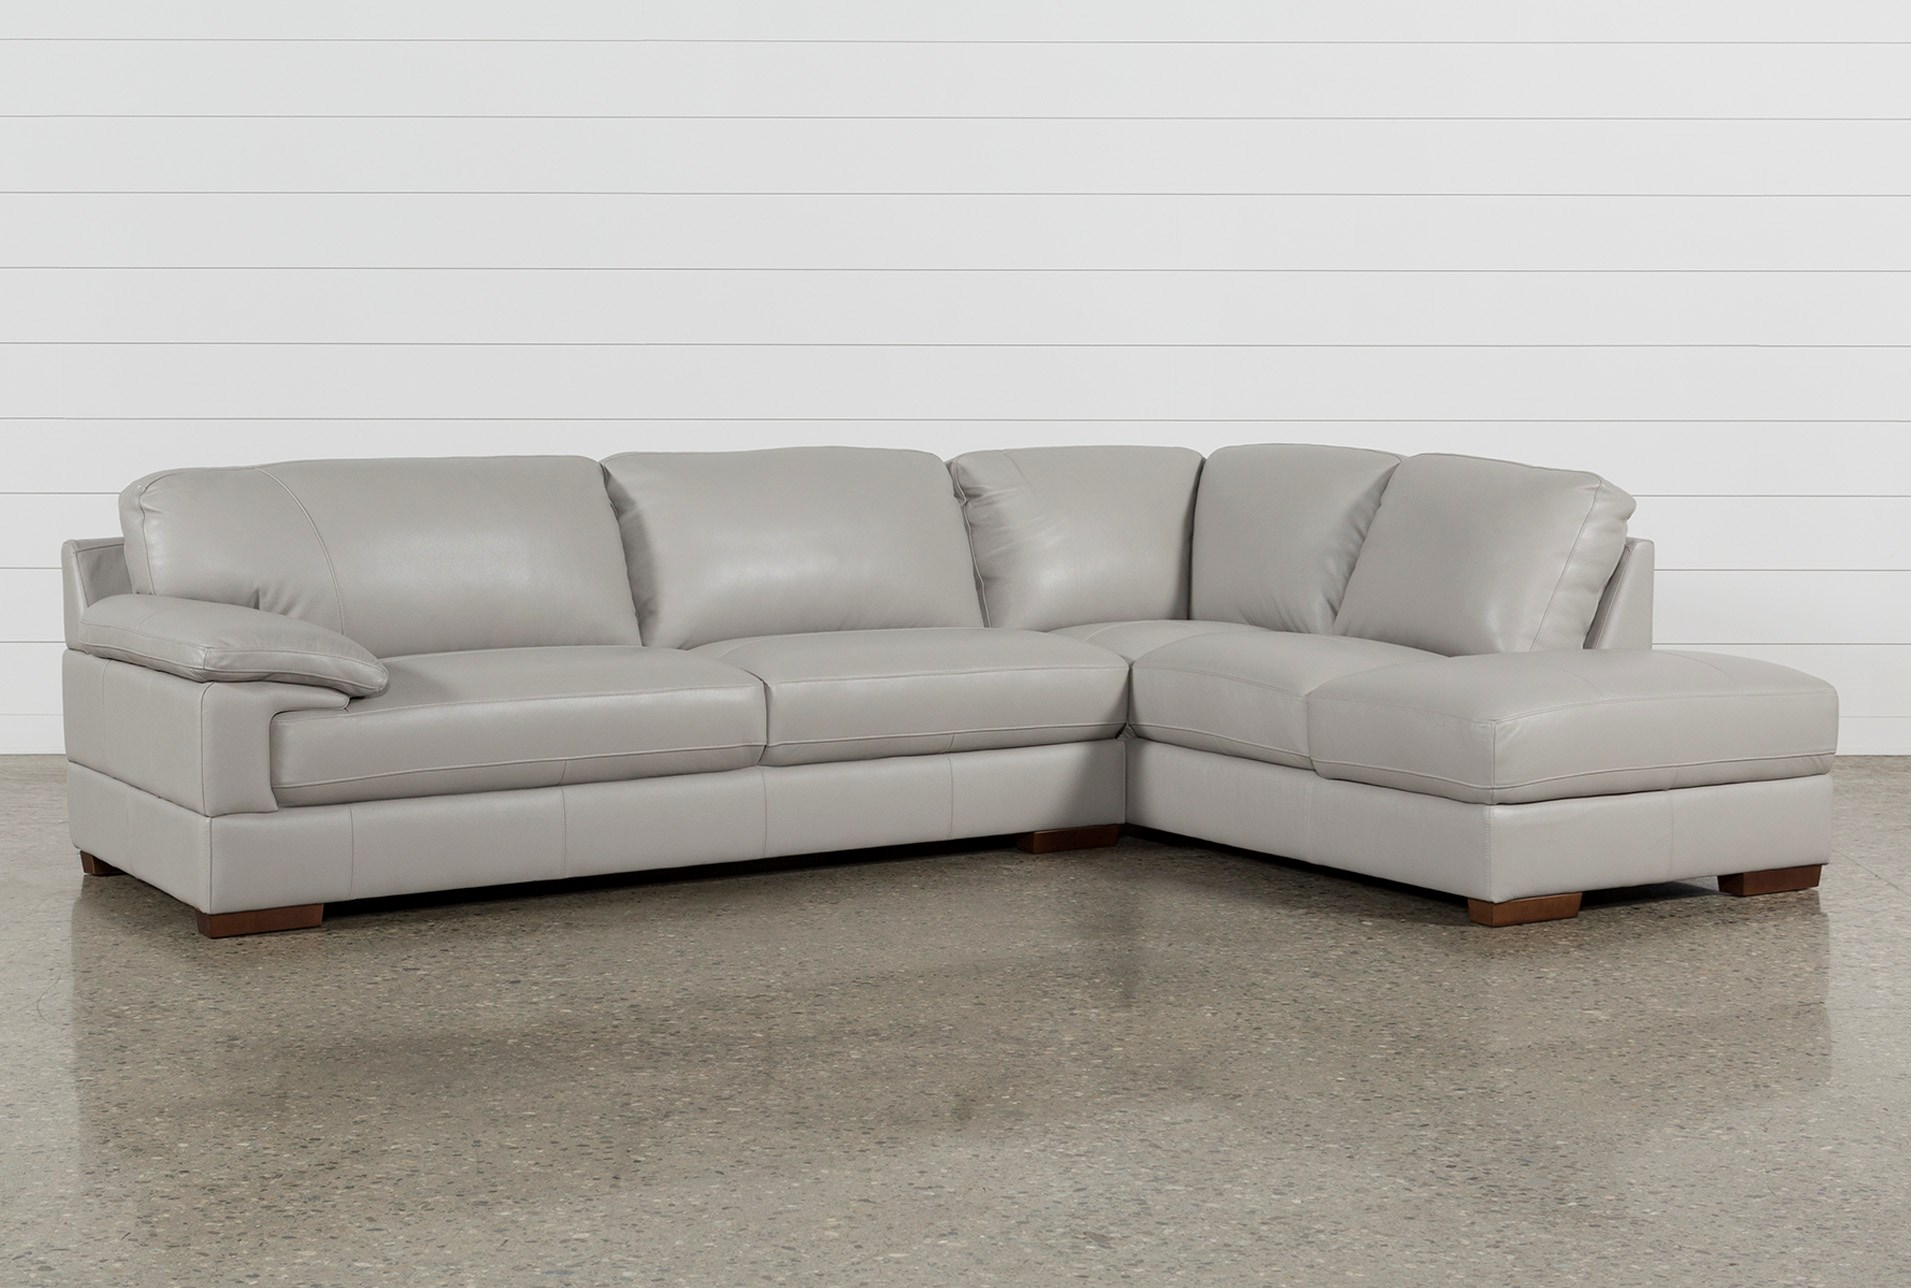 Excellent Nico Light Grey Leather Sectional With Right Arm Facing Armless Storage Chaise Forskolin Free Trial Chair Design Images Forskolin Free Trialorg